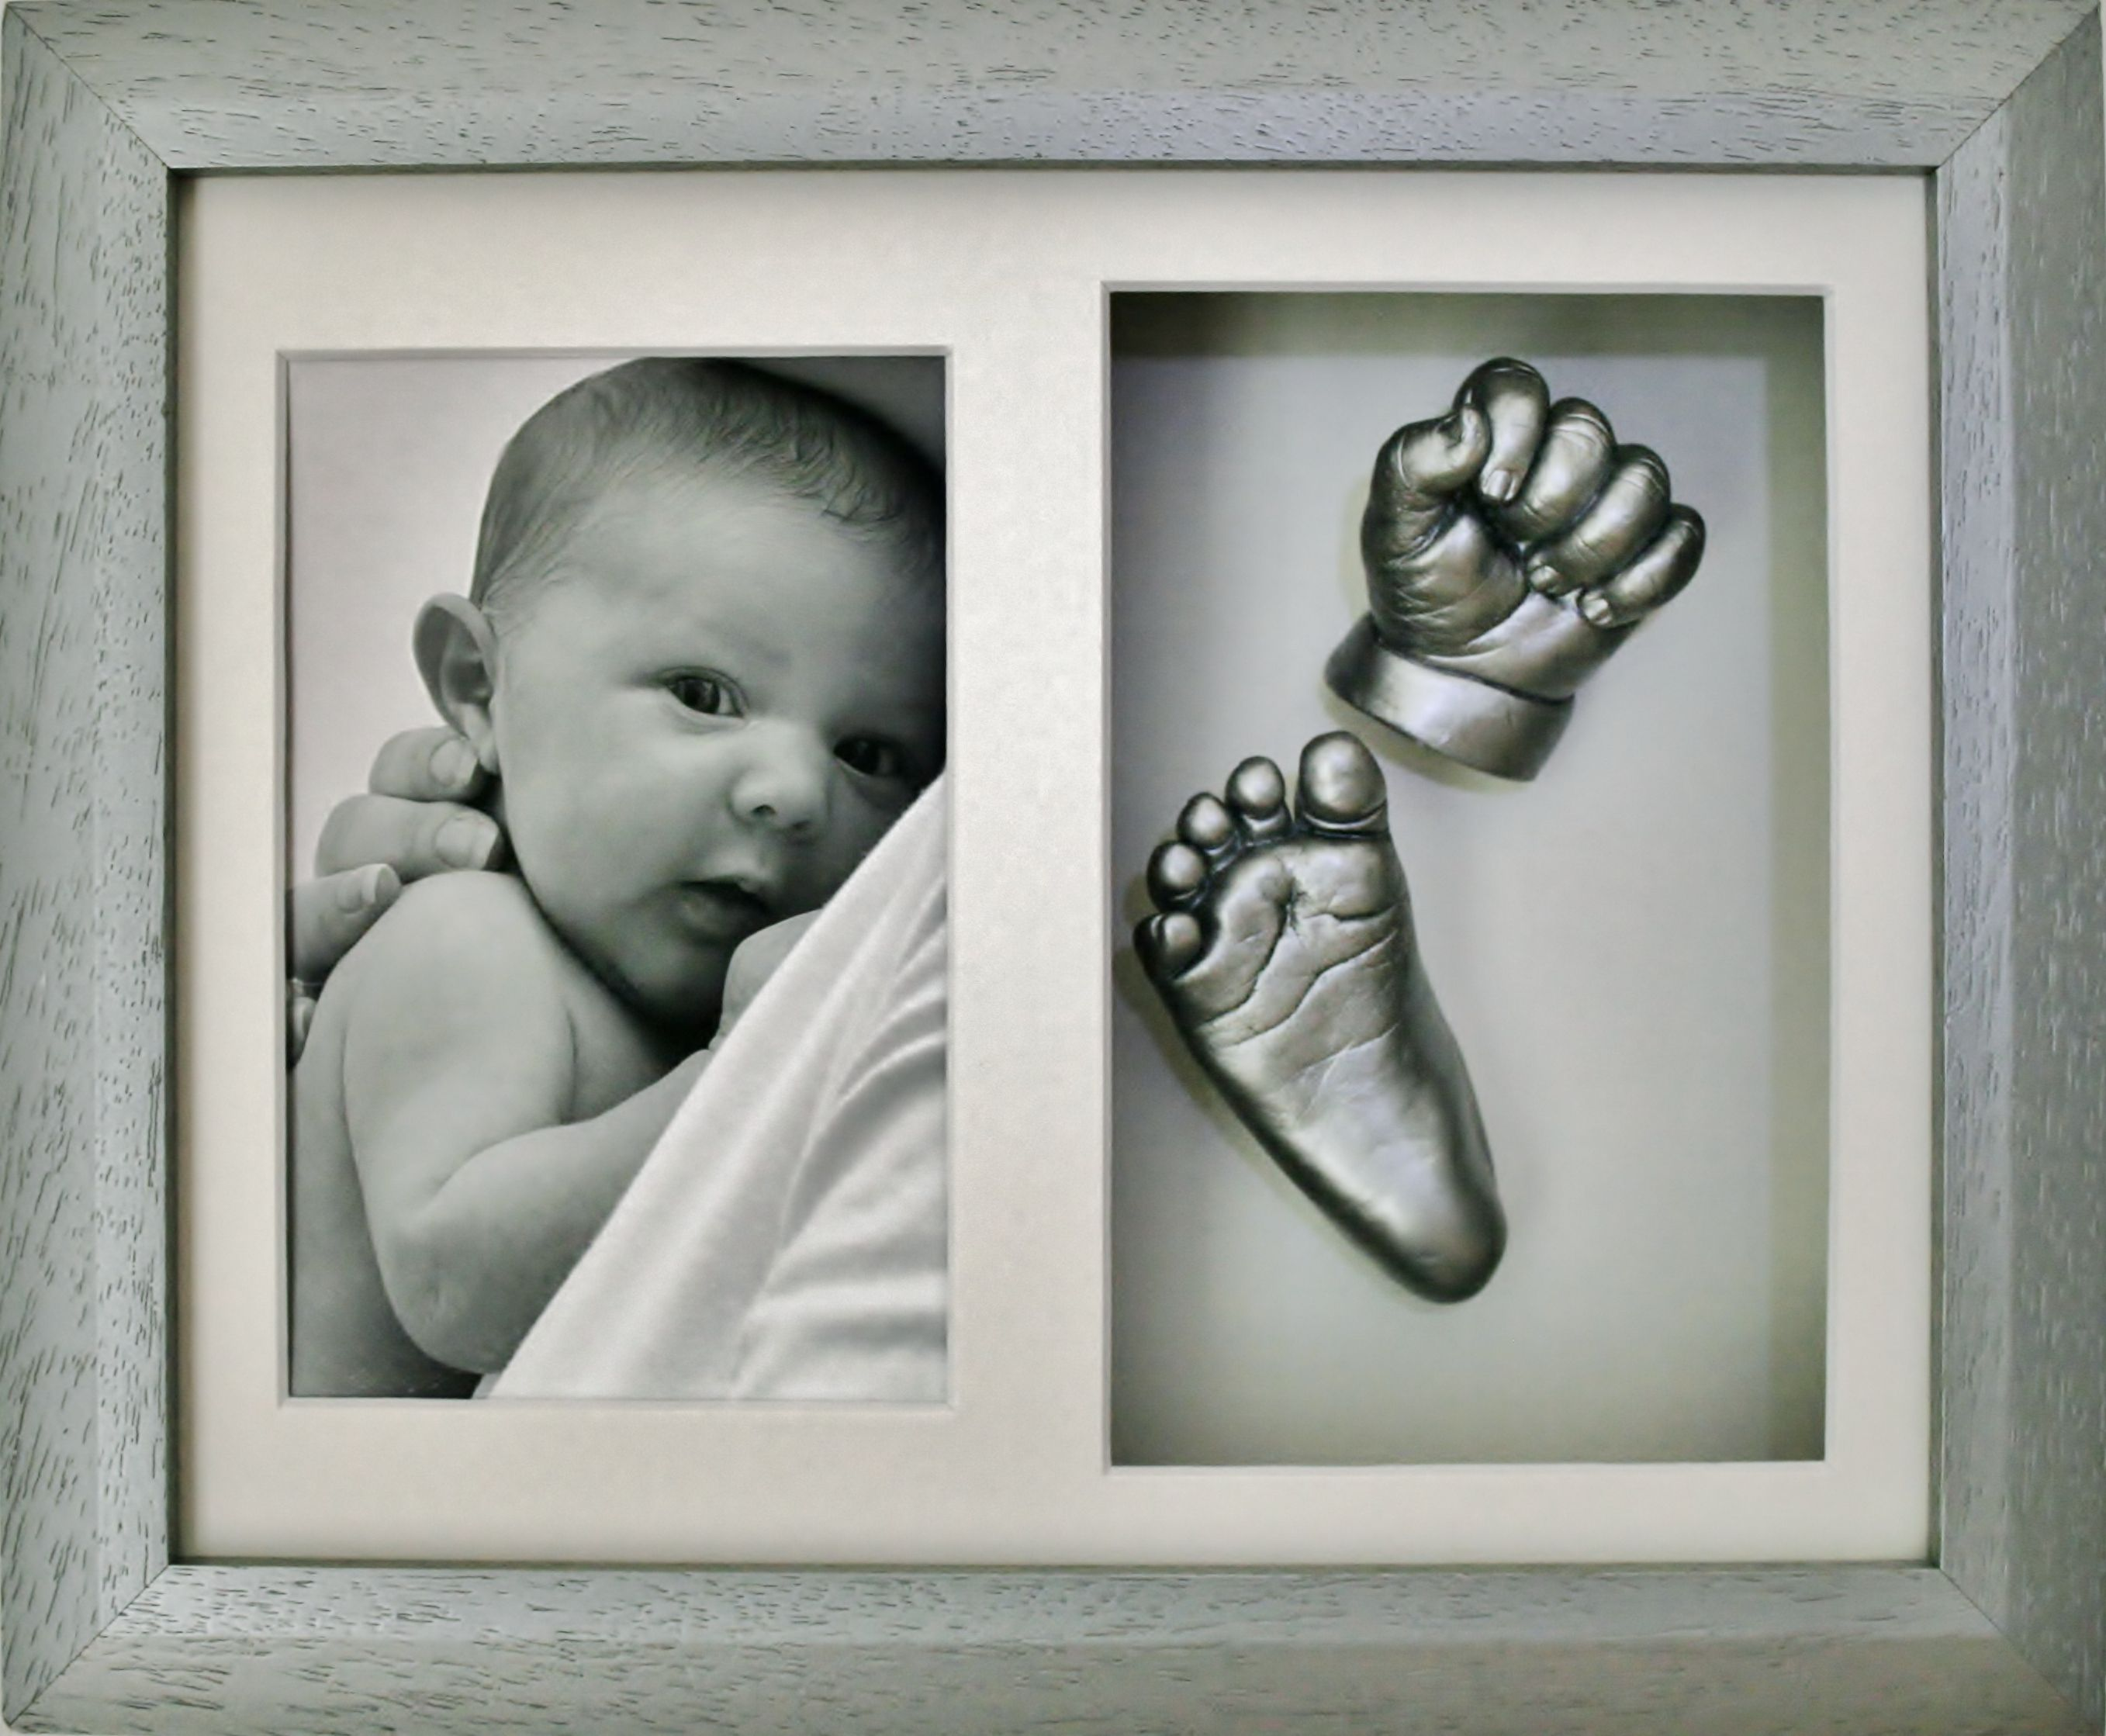 Baby Cast Frame Hand Foot Sculpture Keepsake Mould Casting Photo Clay Gift